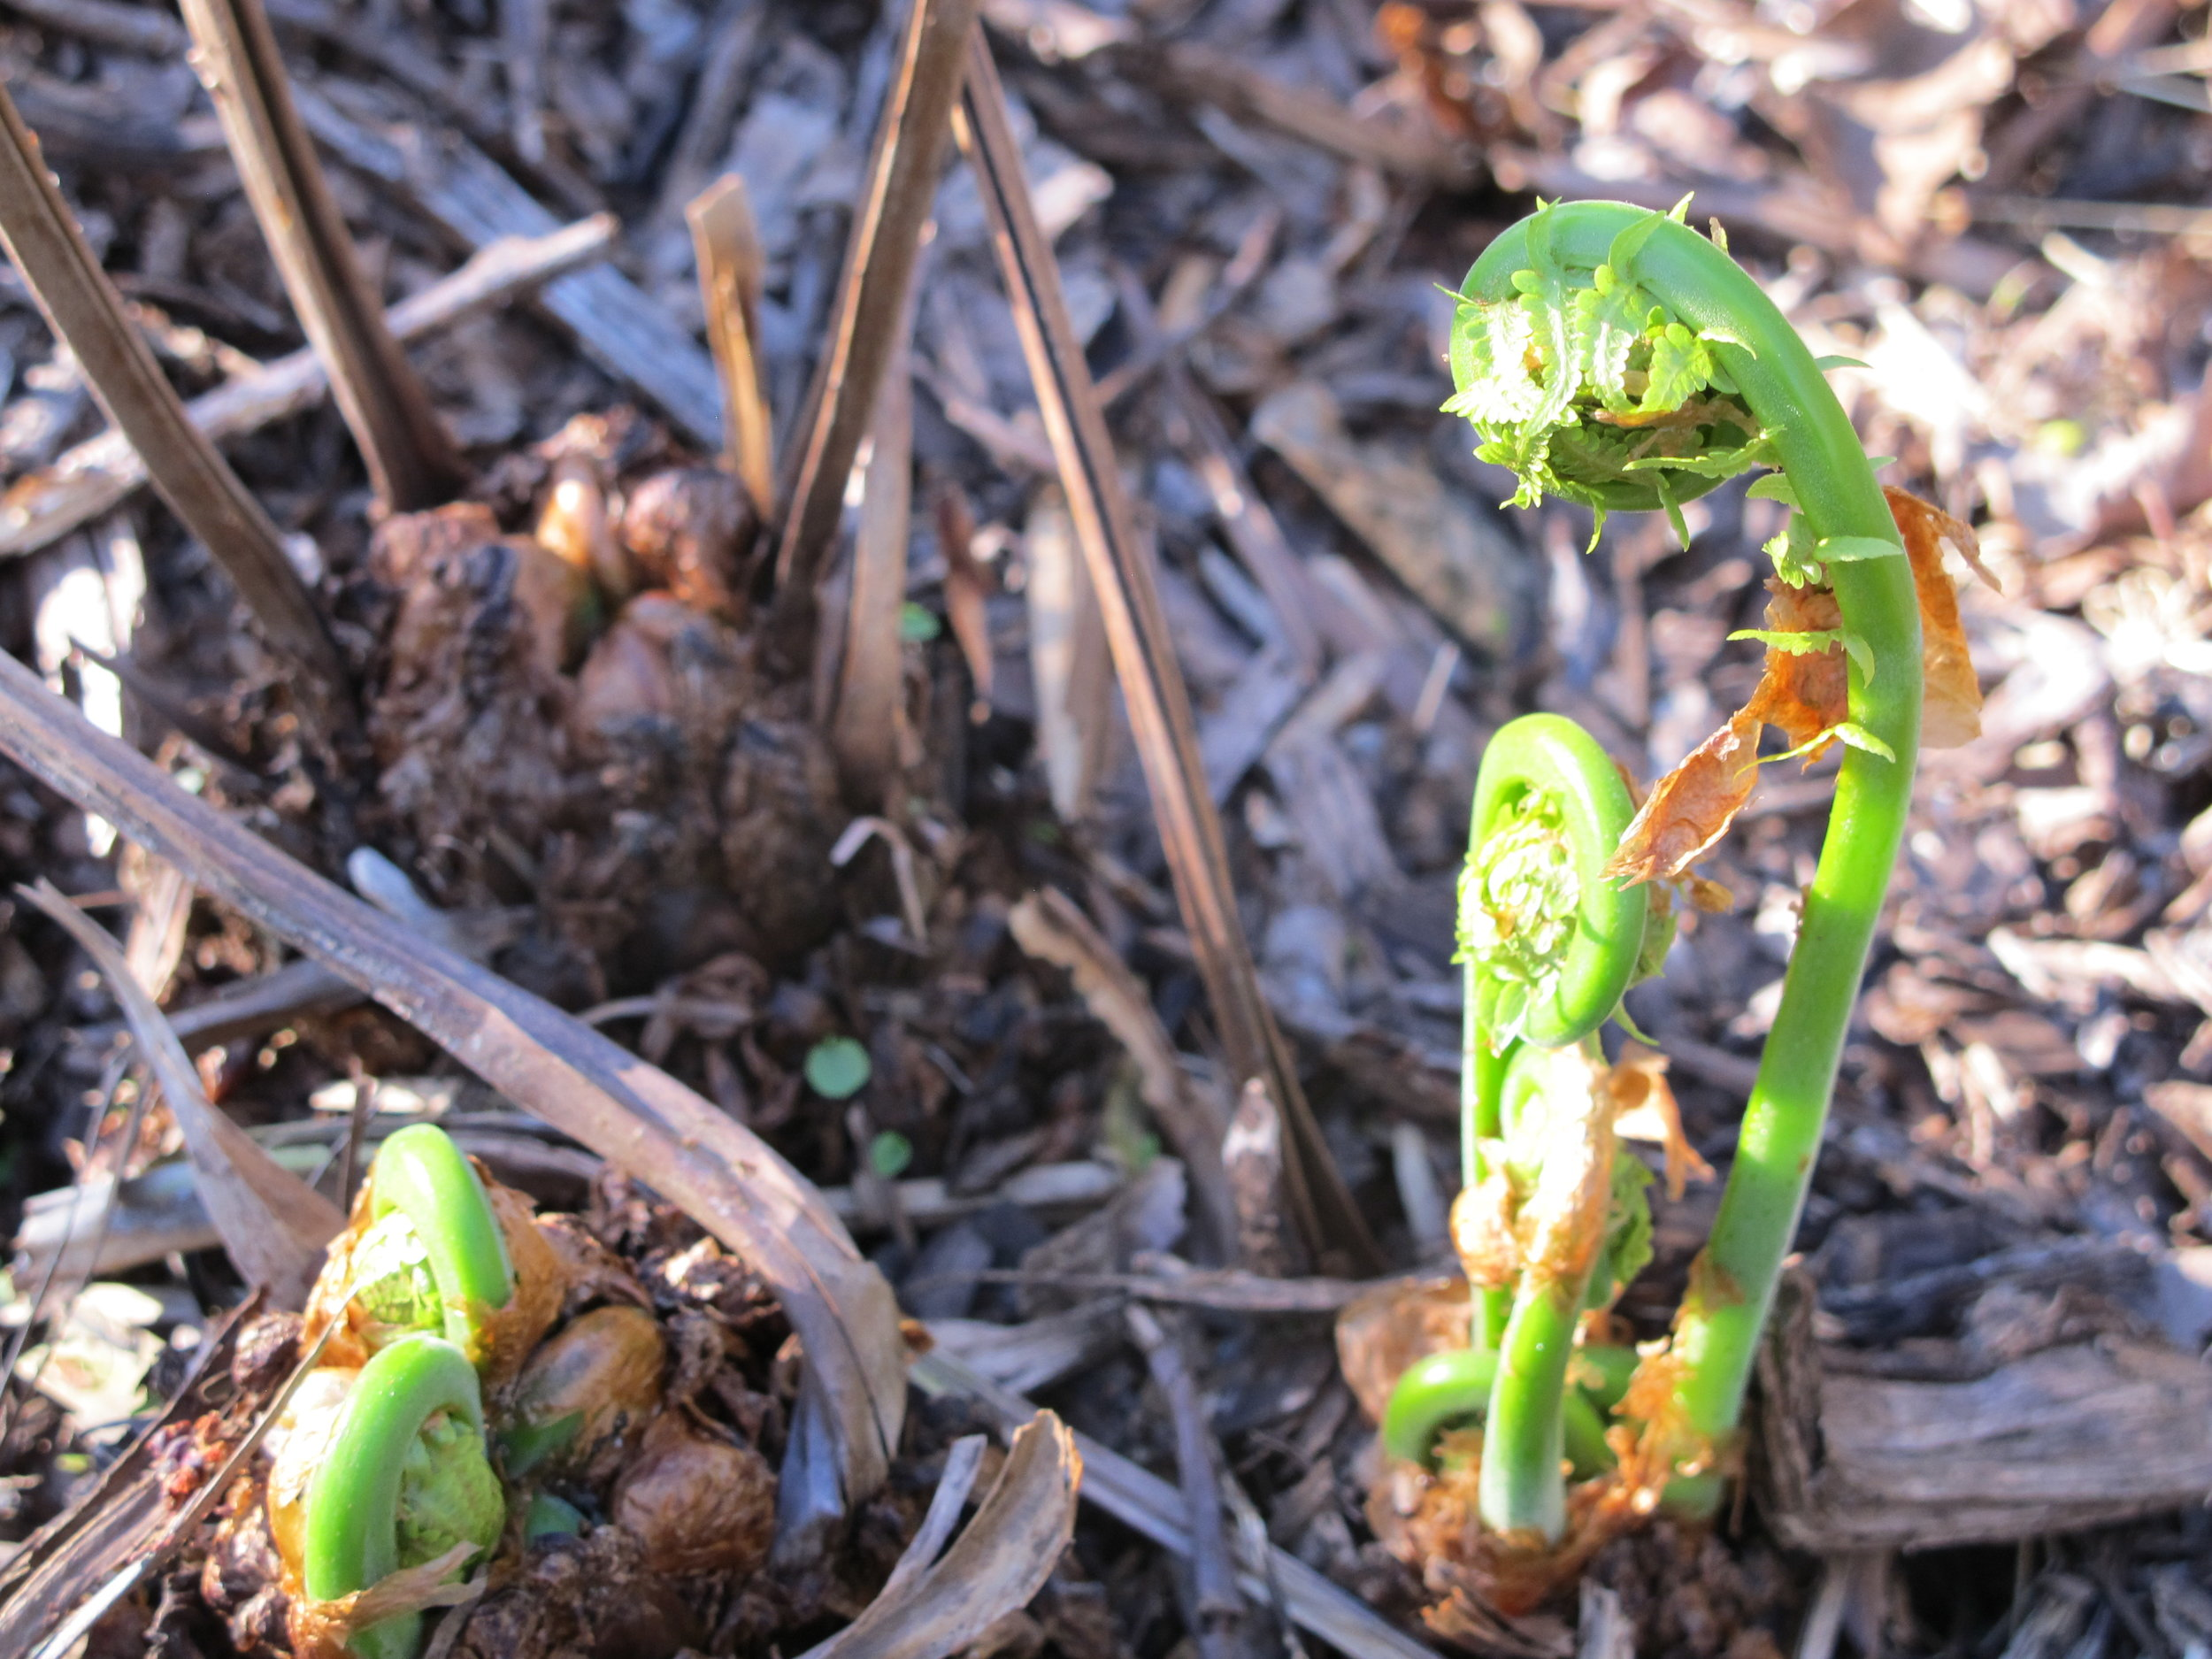 Ostrich Fern (Matteucia struthiopteris) unfurling April 27, 2019, Hudson Valley, NY. Perfect size for harvesting and eating . Note the brown paper-like scales on the emerging fronds.